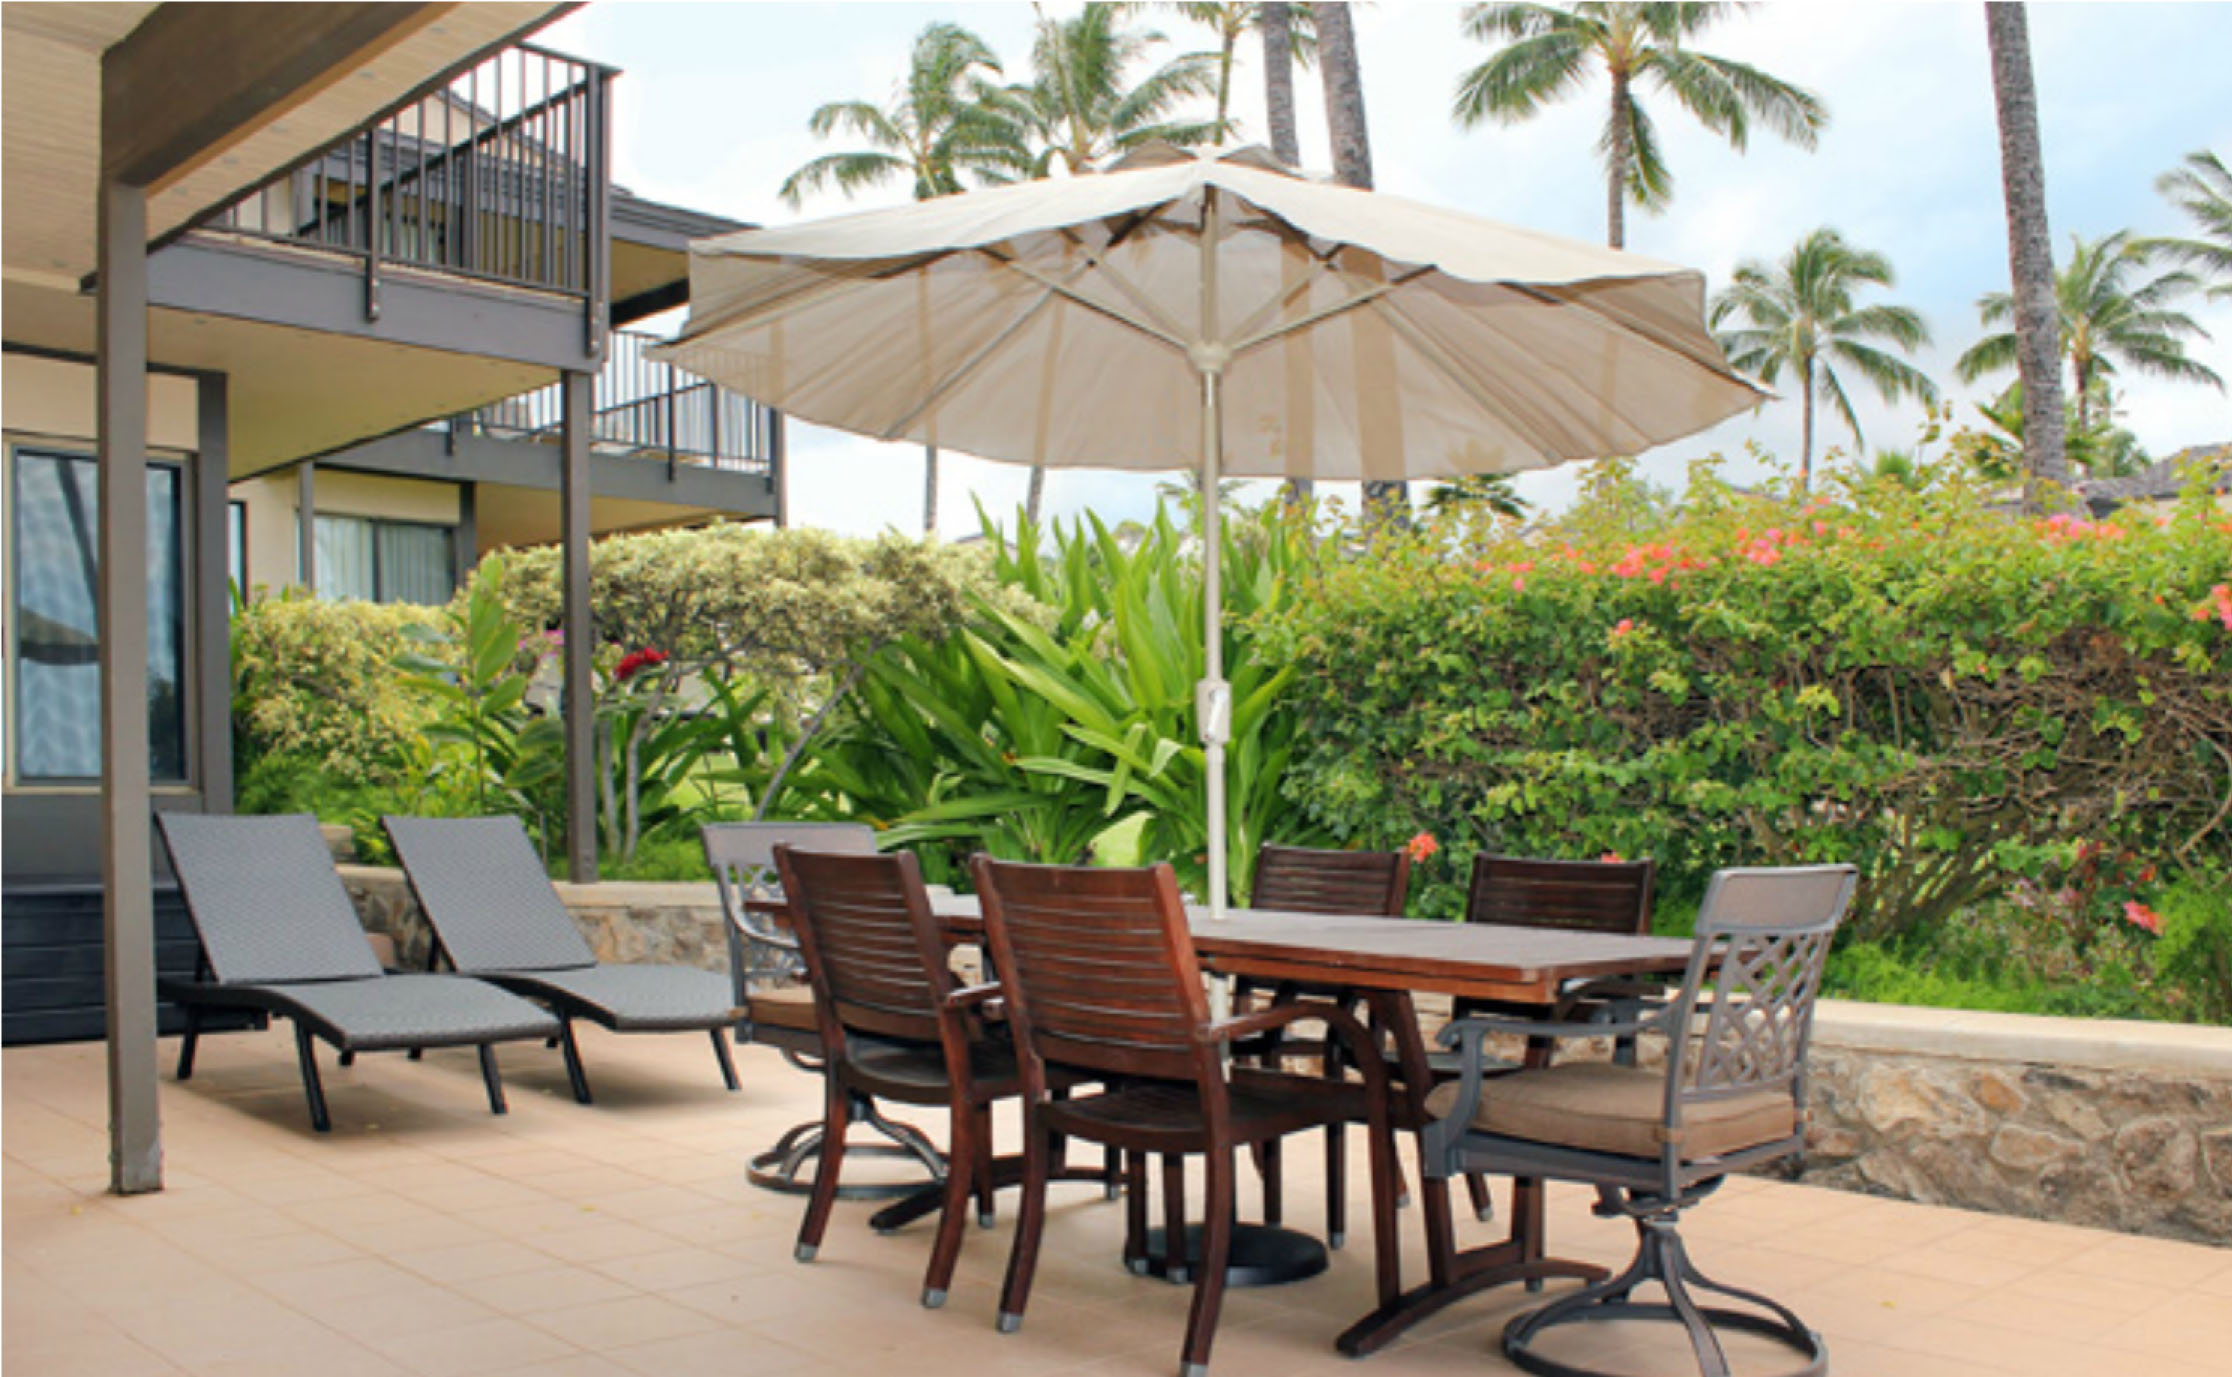 Lanai with outdoor dining table, chairs, umbrella